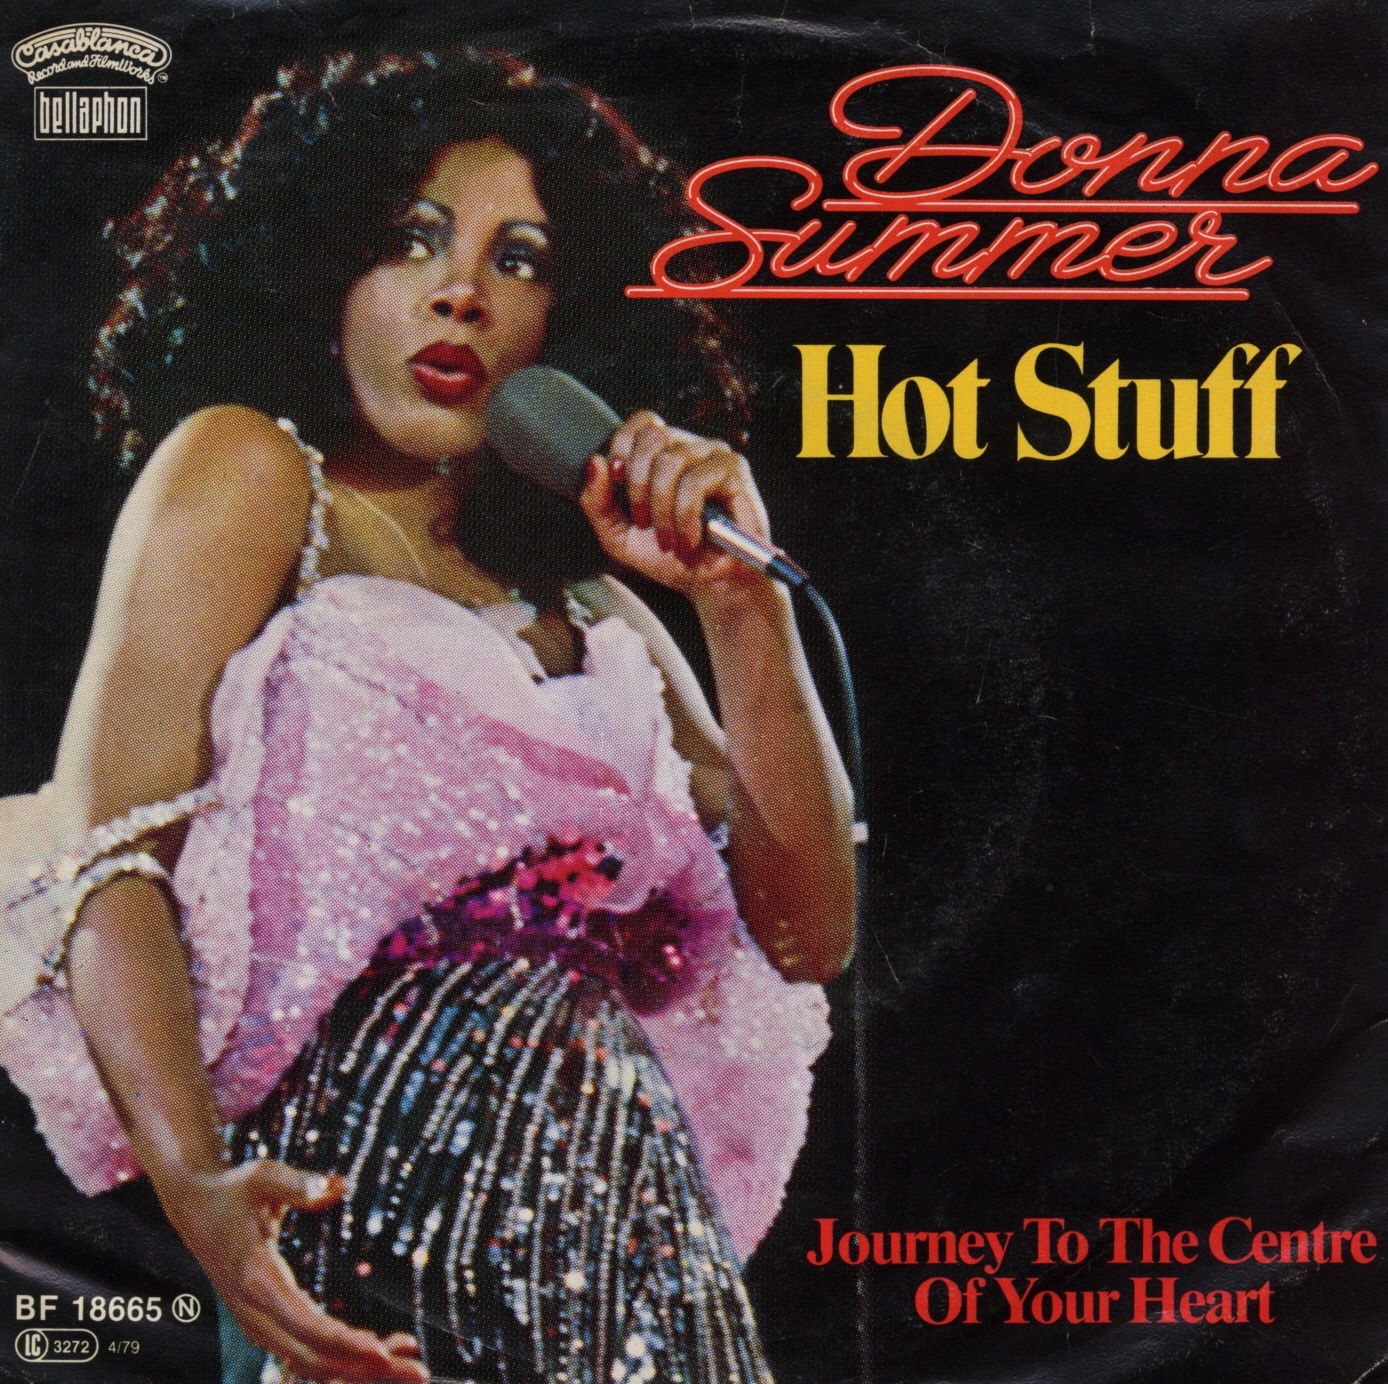 Hot stuff (Foto: Donna Summer)